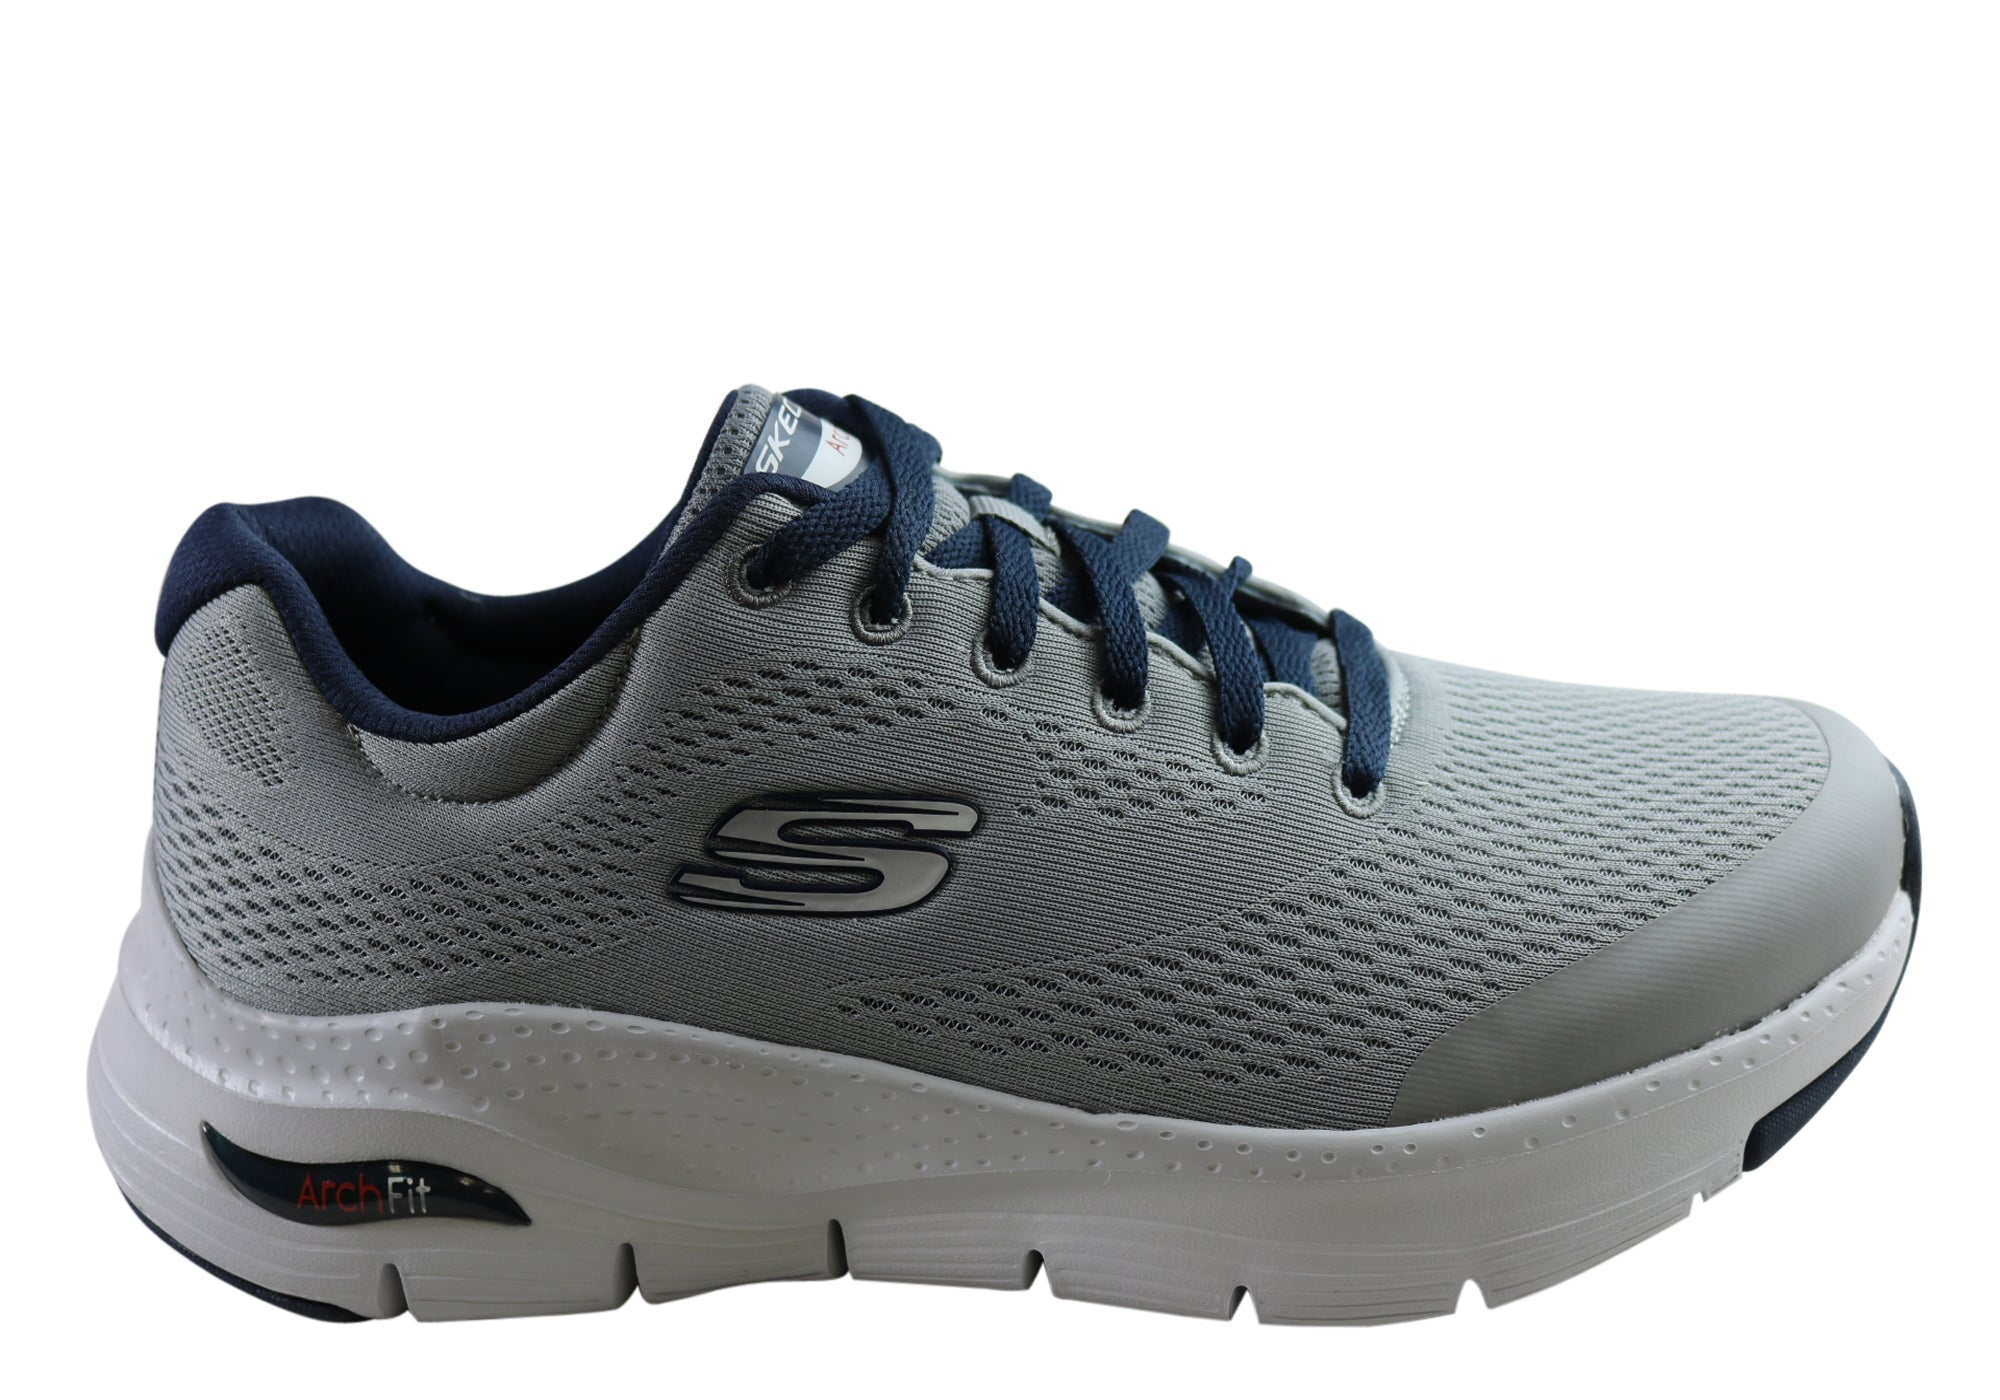 Skechers Mens Comfort Arch Fit Athletic